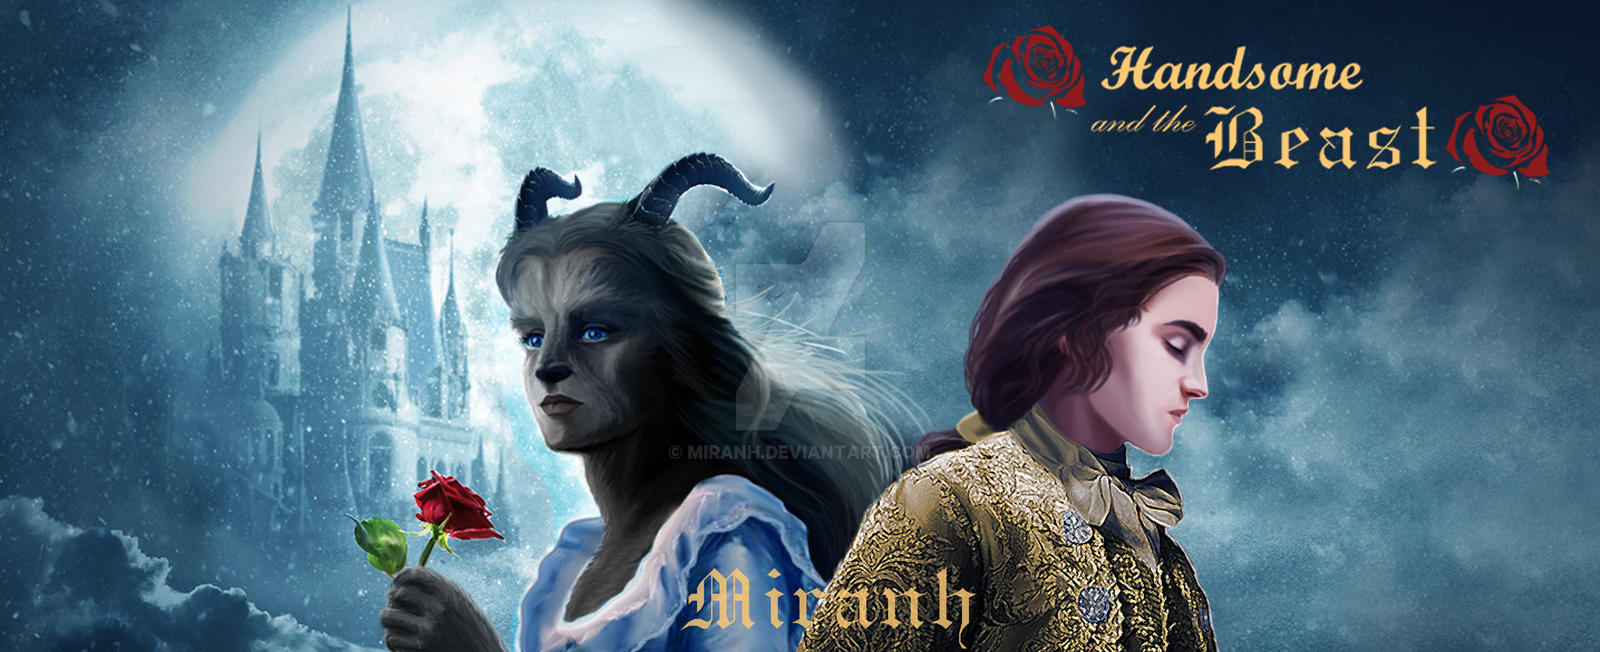 Handsome and the Beast - Live Action version by Miranh on ...